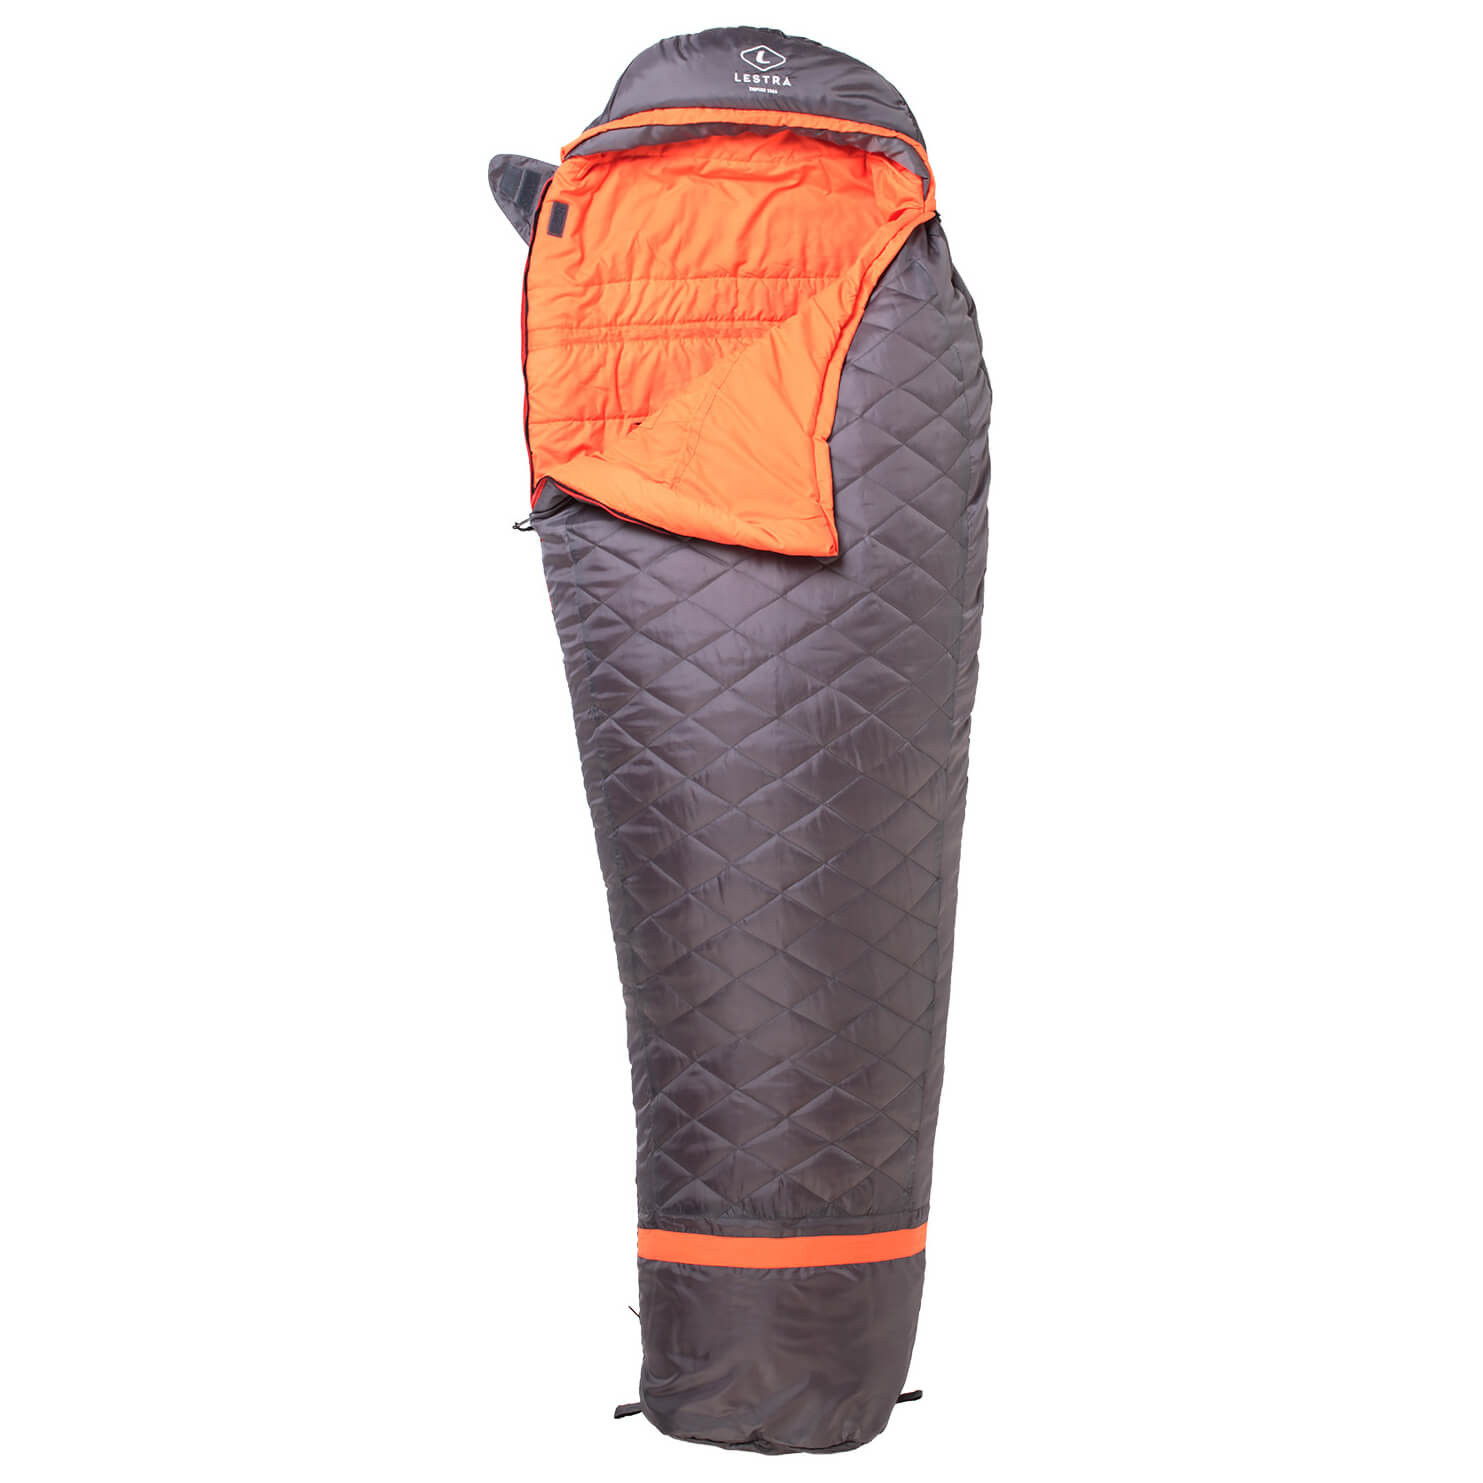 ultra light sleeping bag things you should pack at you backpack for an adventure or longterm travel.